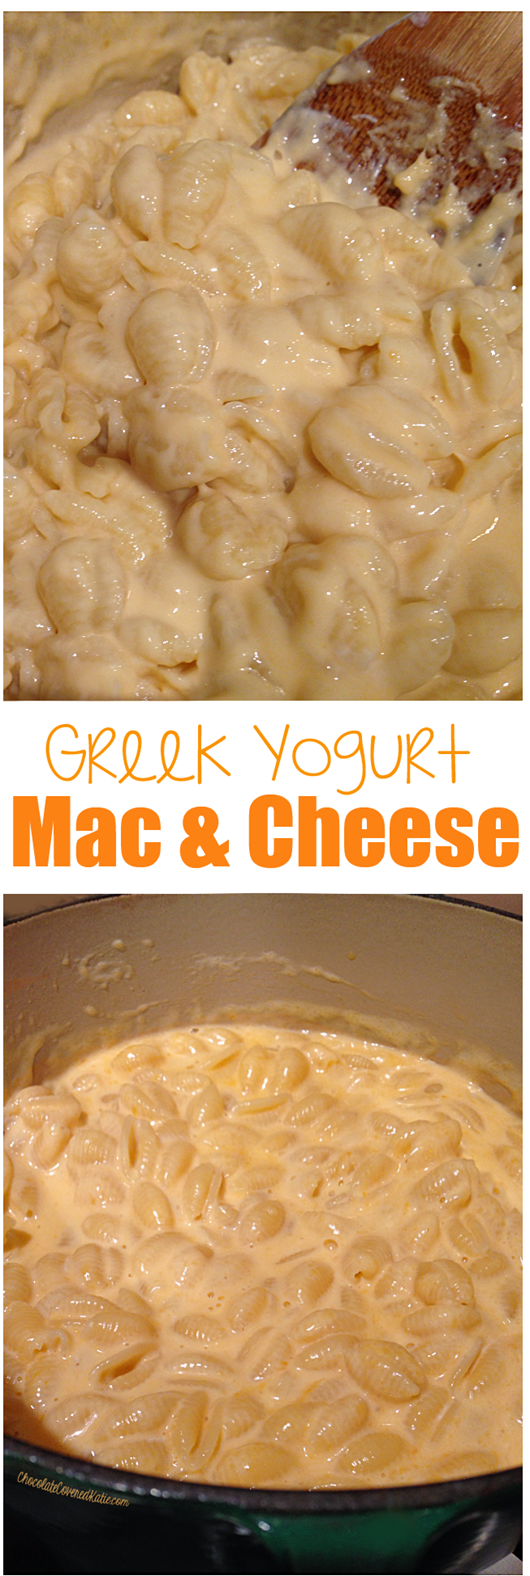 how to make mac and cheese without flour